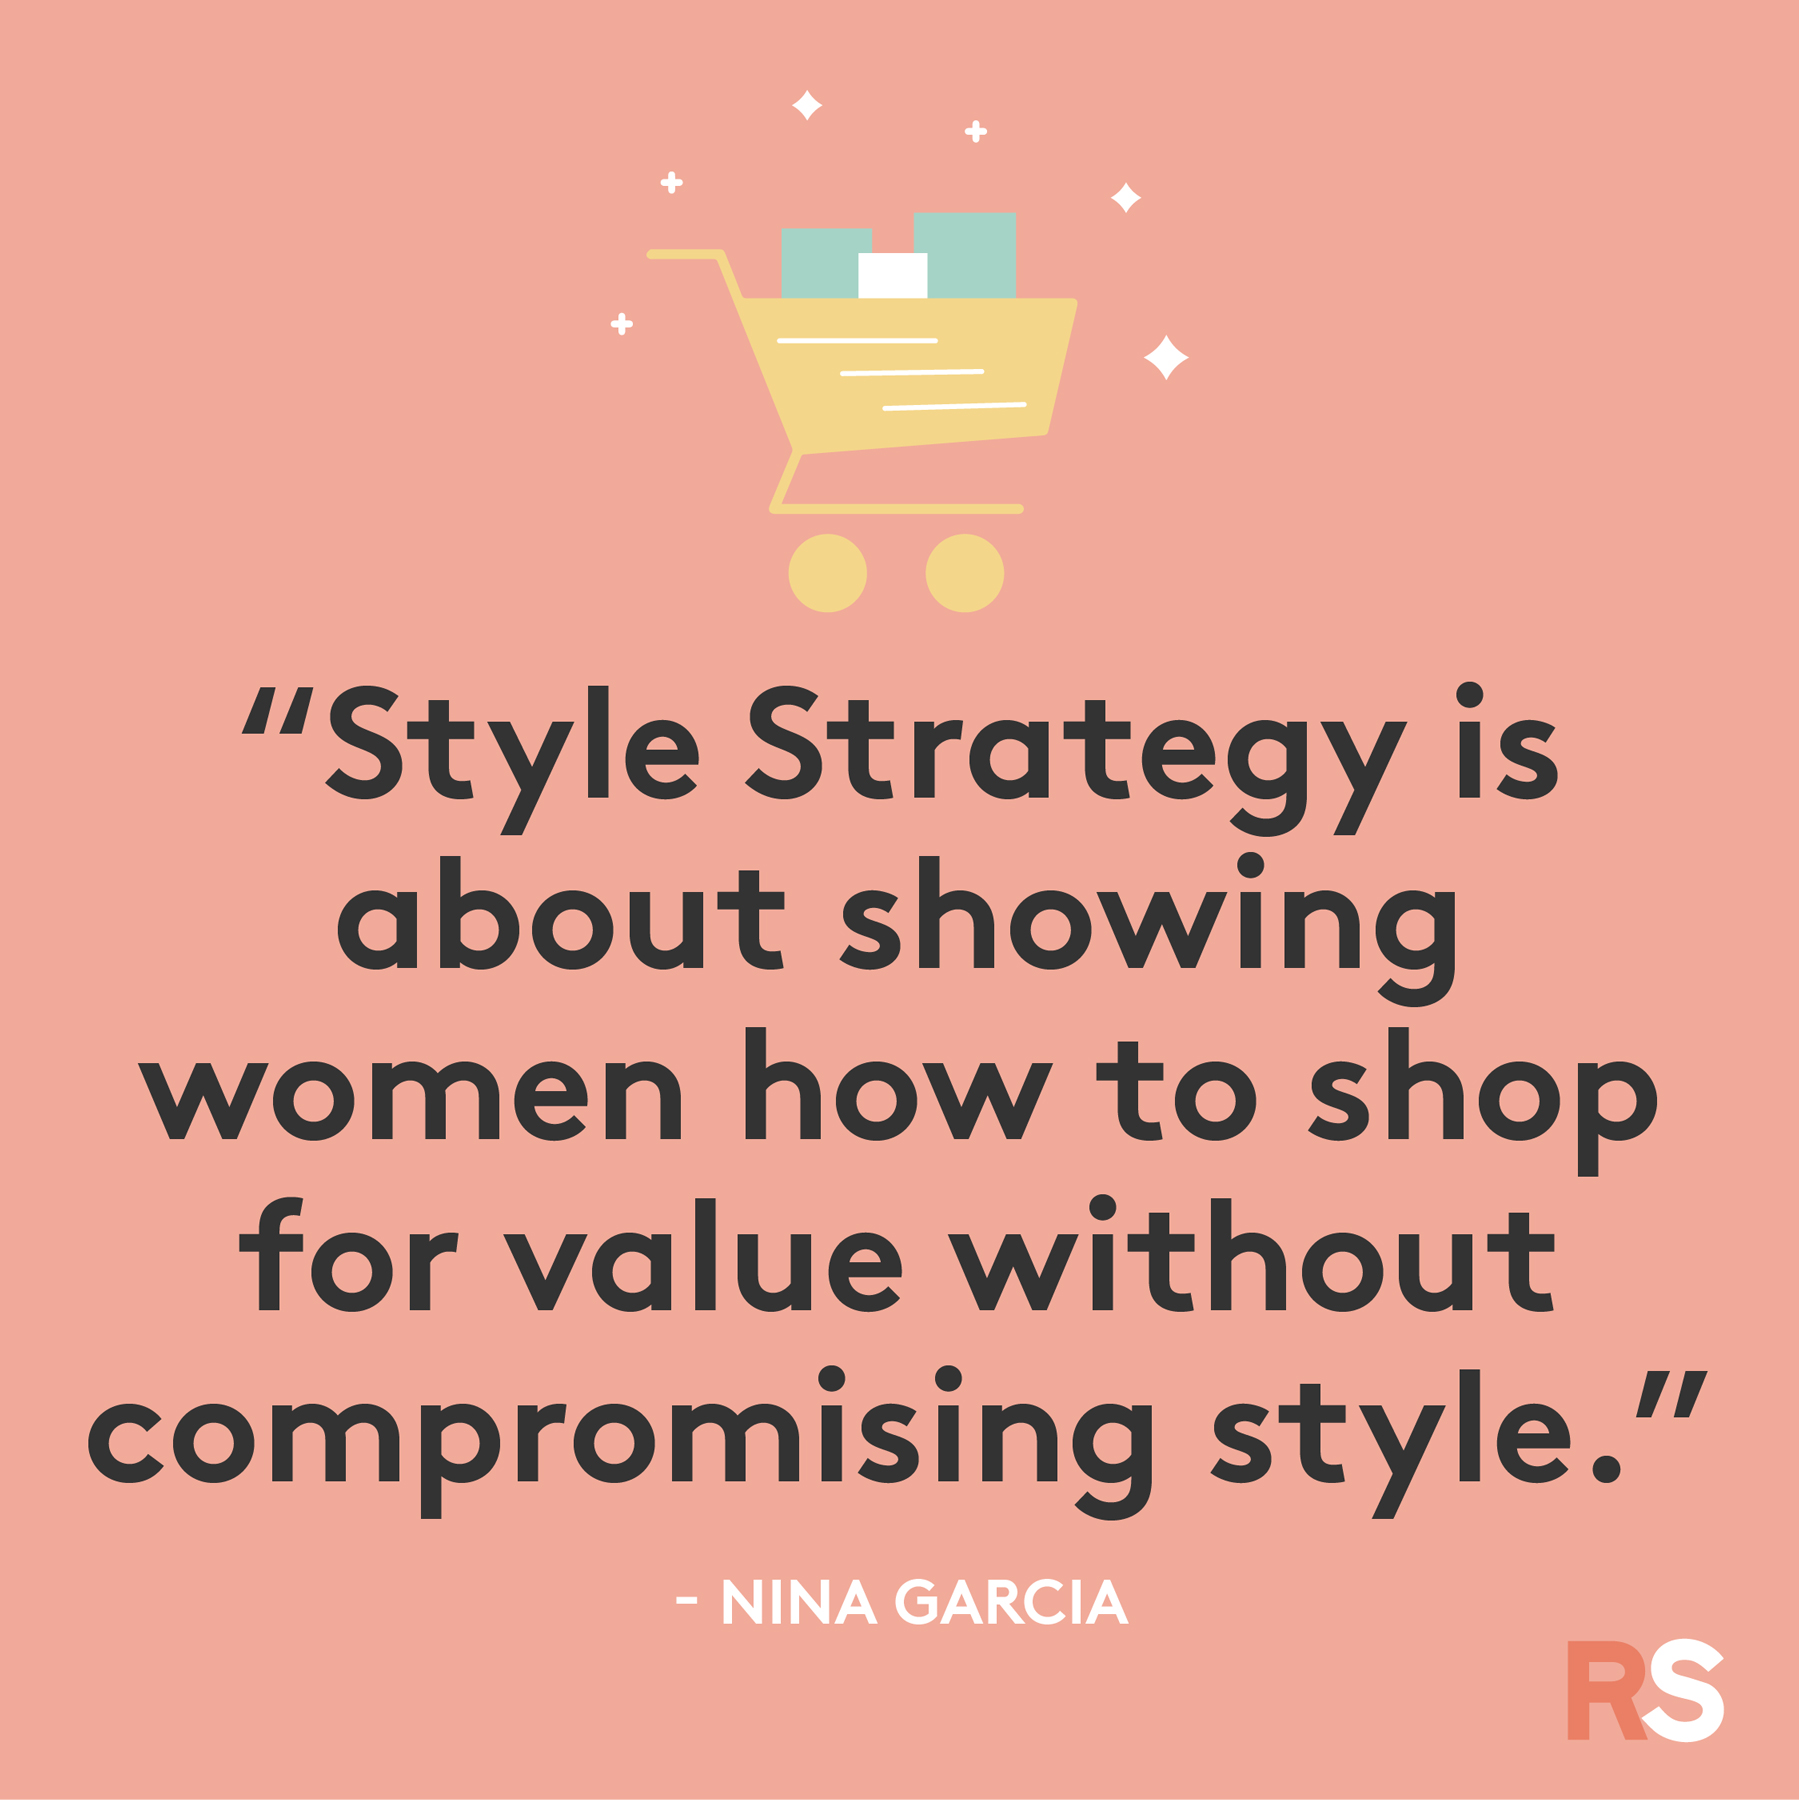 Black Friday funny quotes, sayings - Nina Garcia, Style Strategy